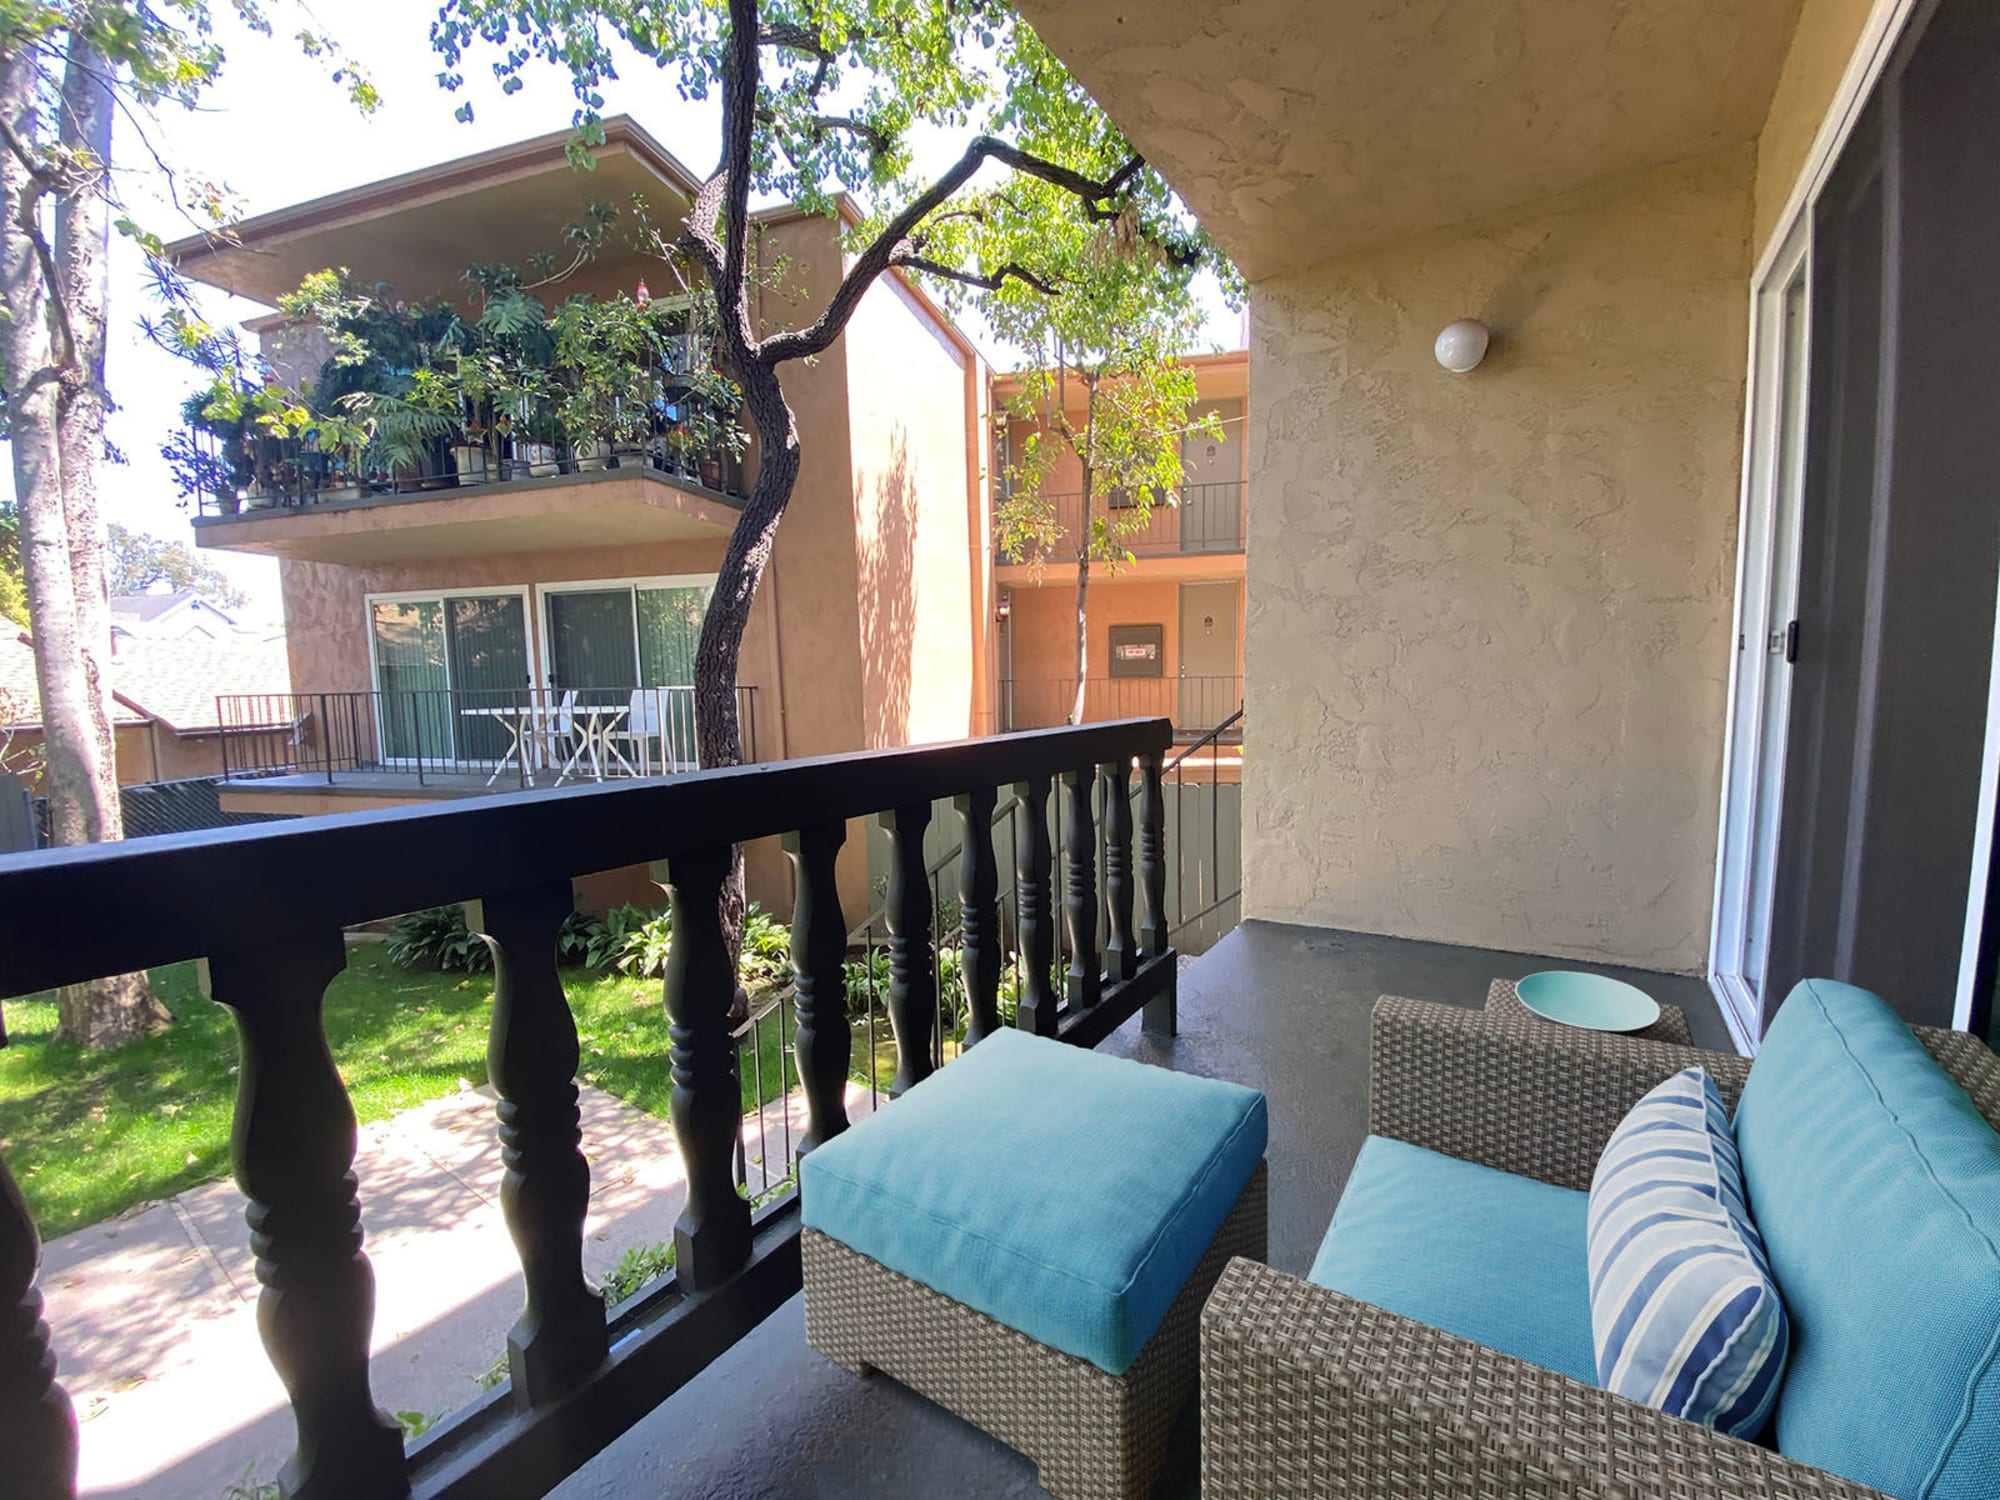 Well-furnished private balcony outside an apartment at Casa Granada in Los Angeles, California